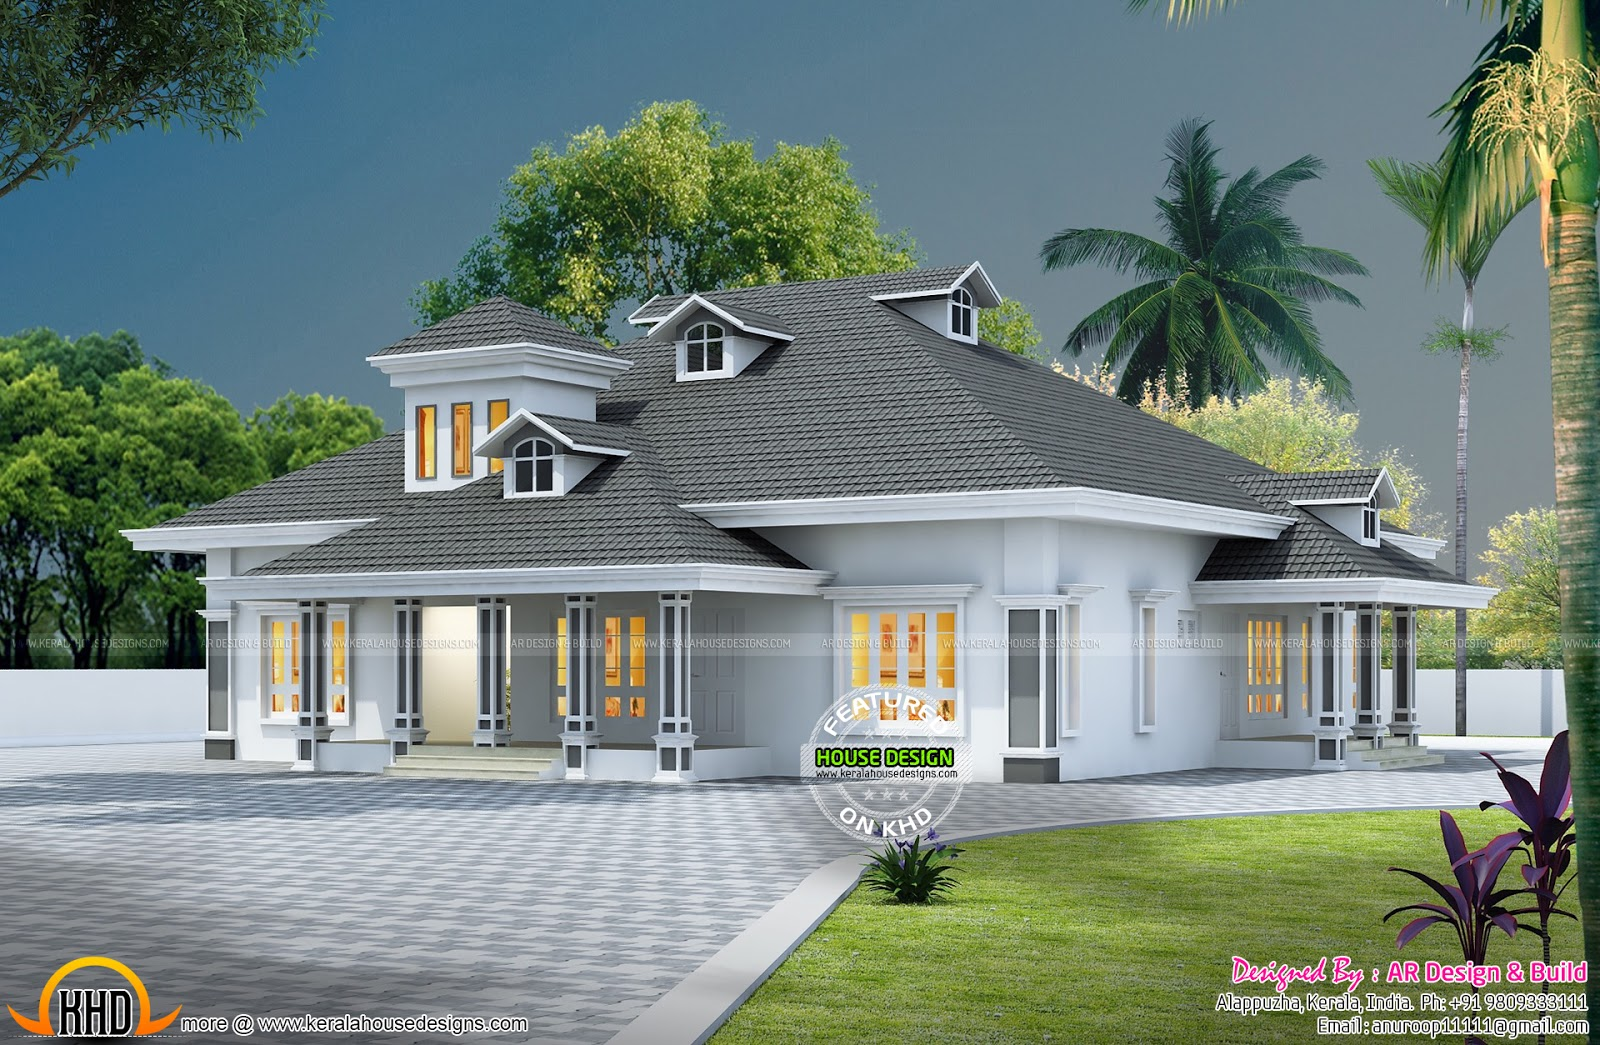 European model sloped roof house keralahousedesigns for House designs 3d model